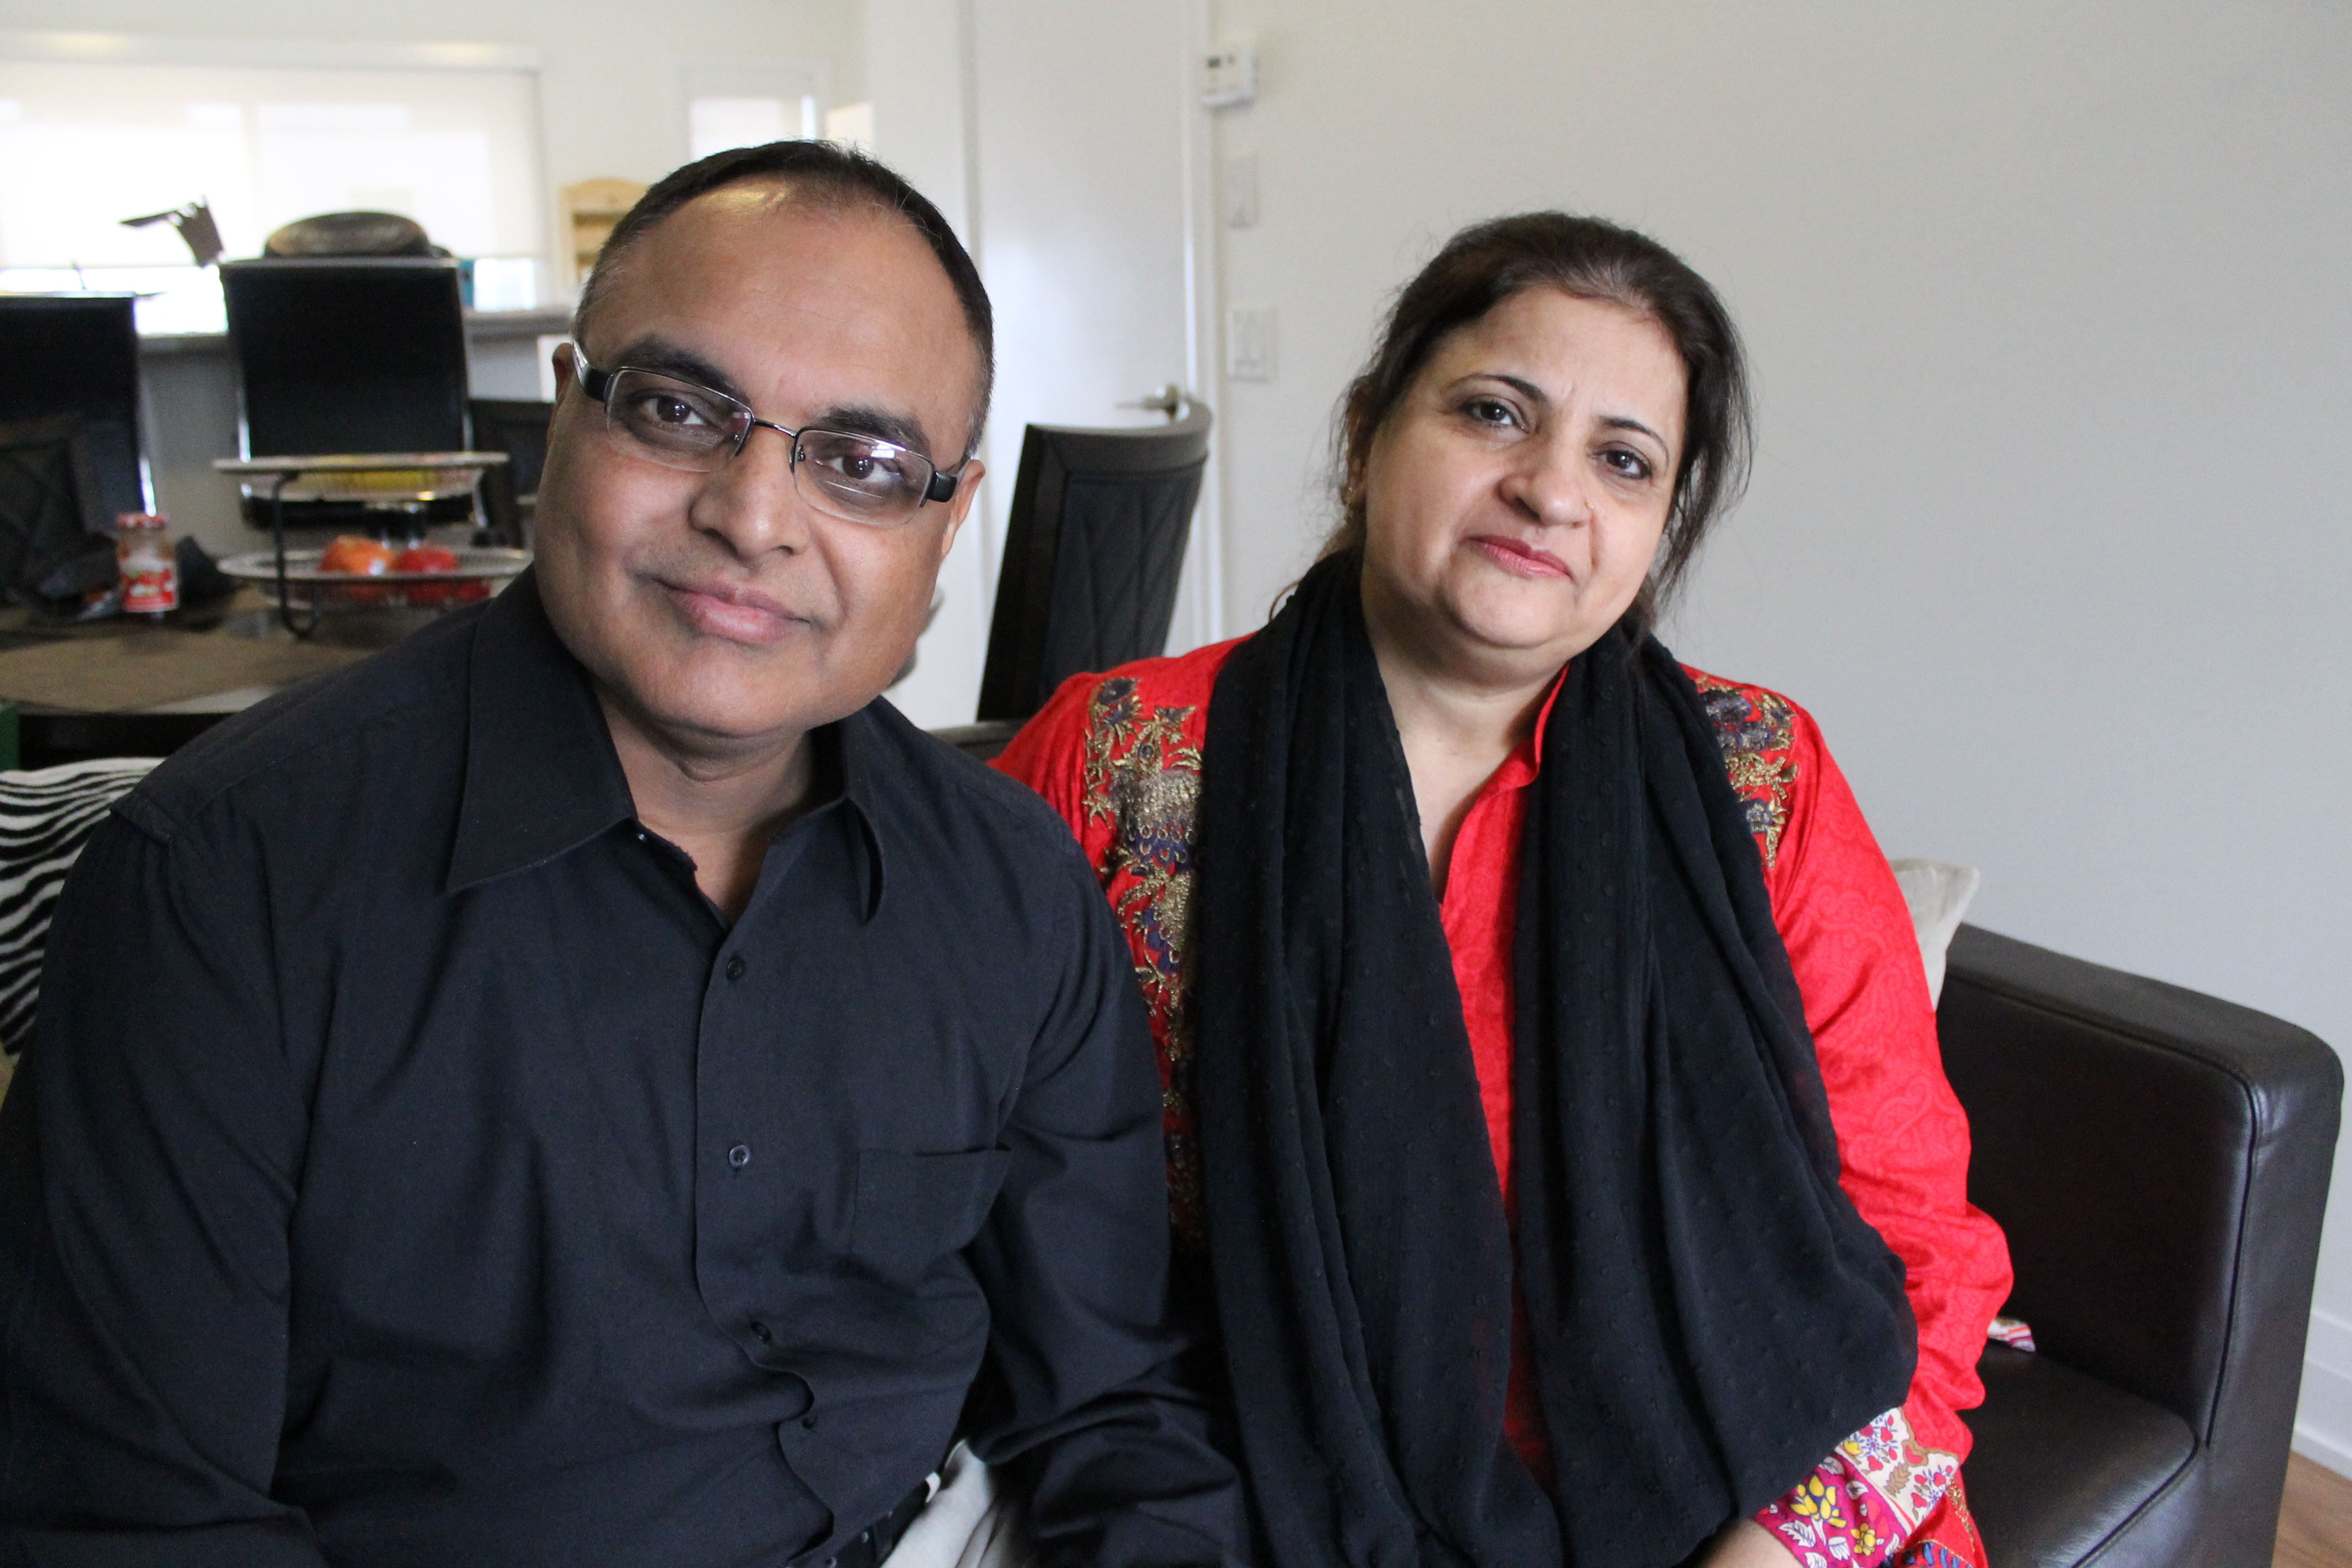 Waseem and his wife share how they plan to make their new house a home..